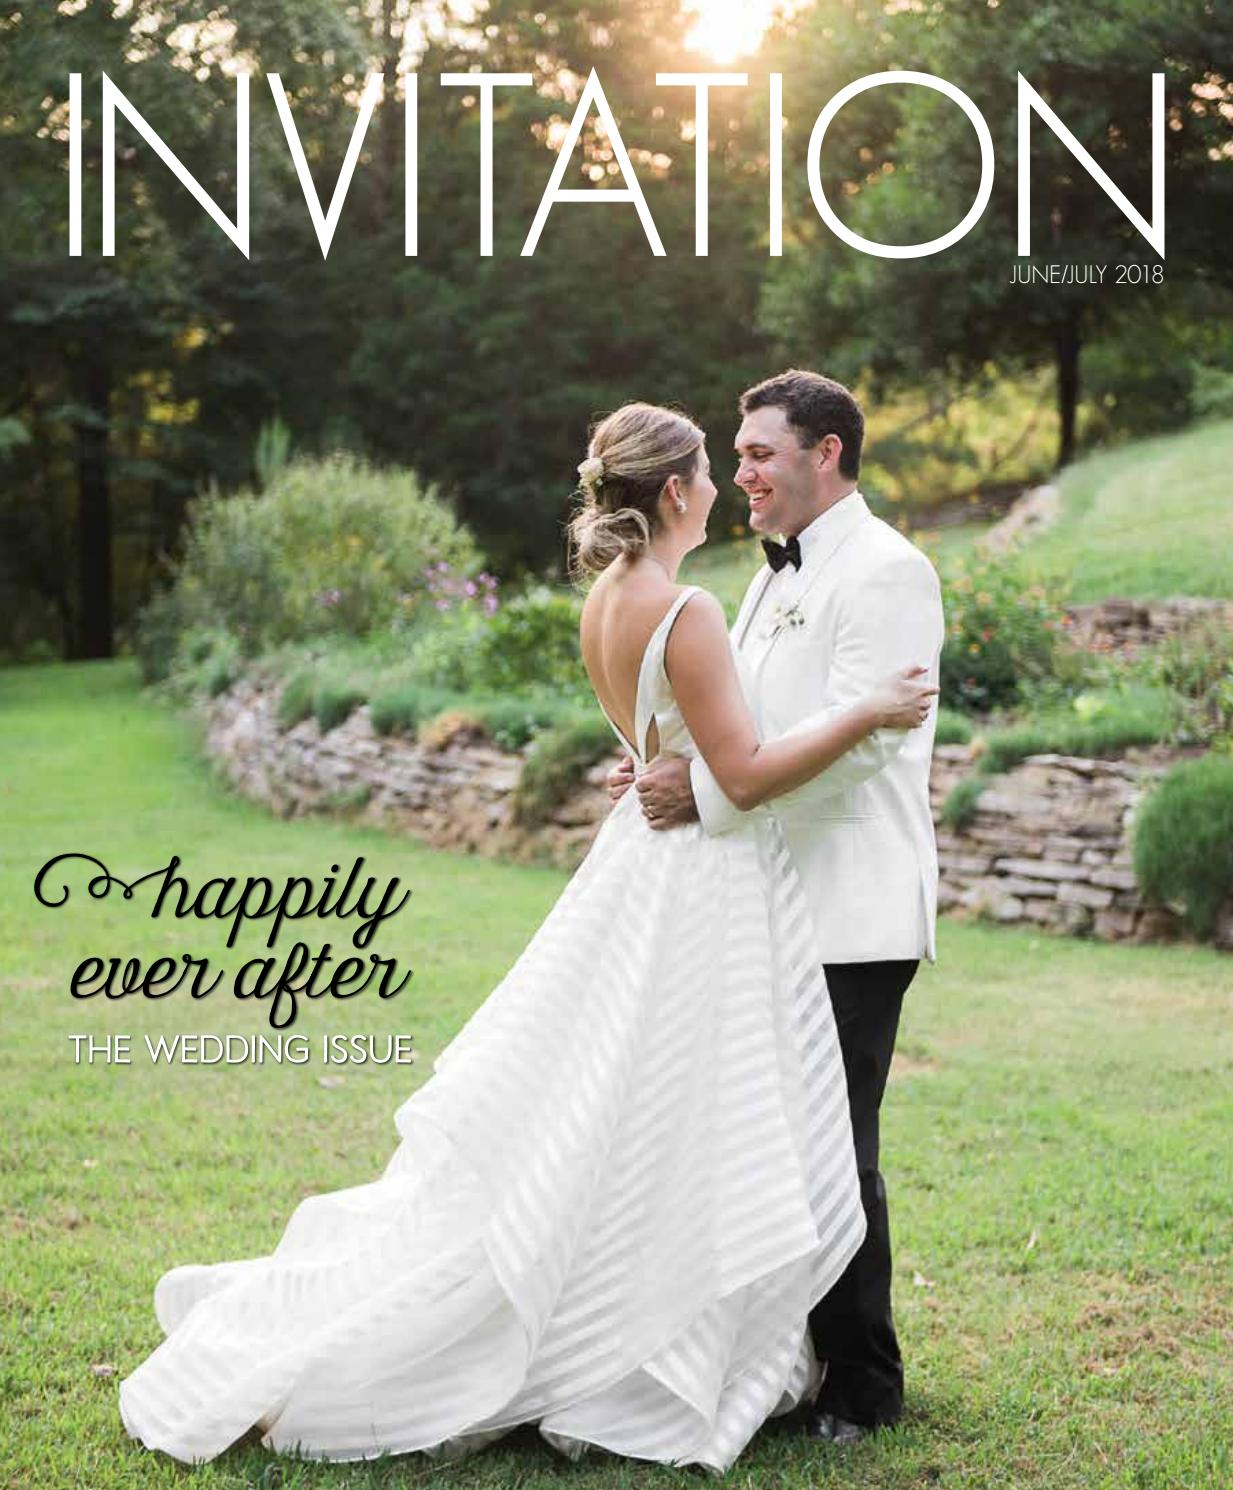 Invitation Magazine June July 2018 By Invitation Magazines Issuu Zoechip is a free movies streaming site with zero ads. invitation magazine june july 2018 by